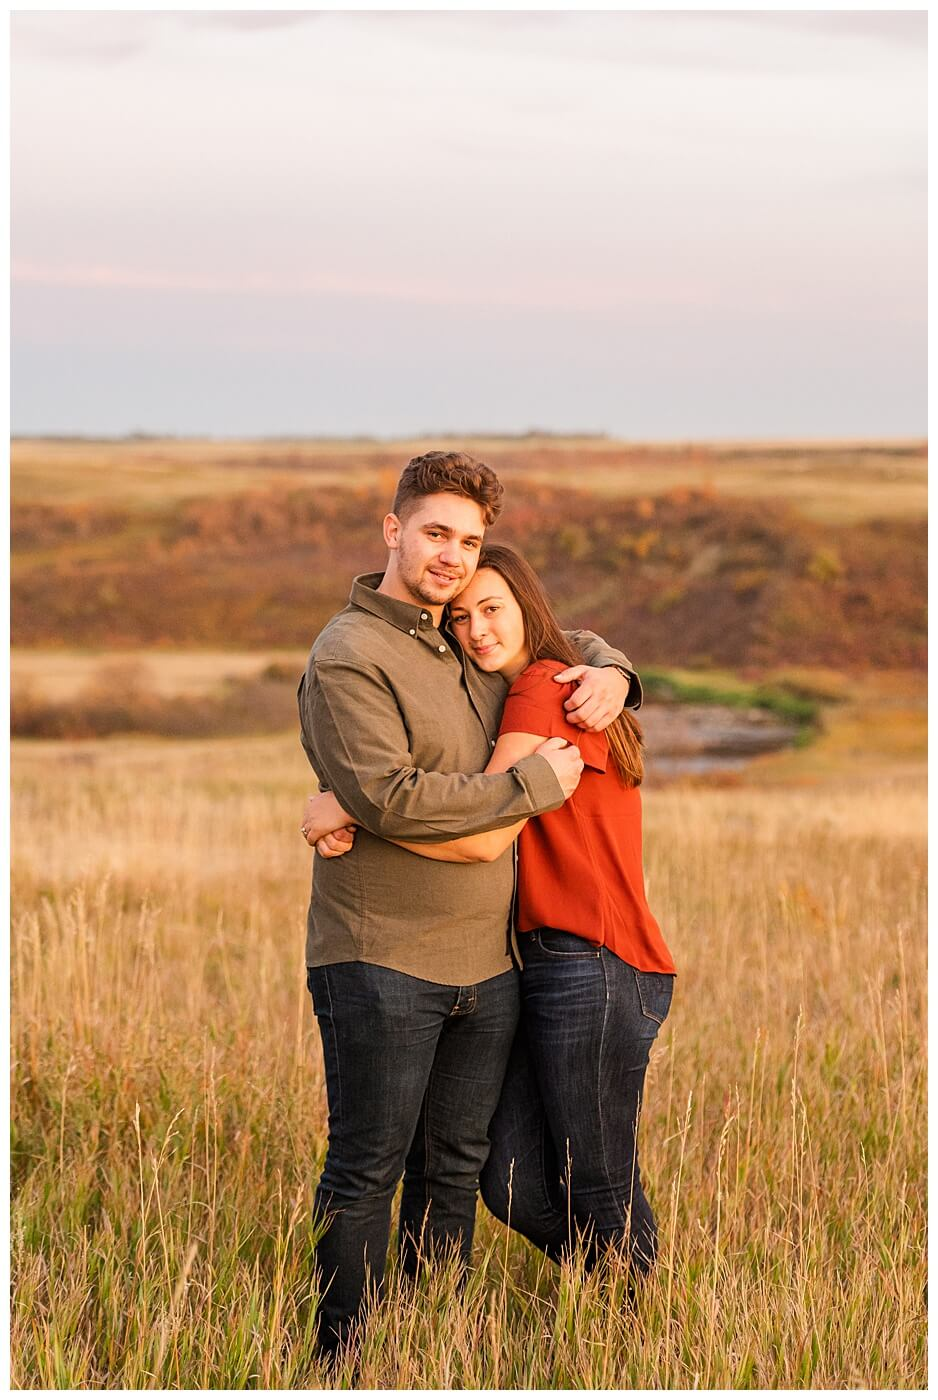 Tris & Jana - Engagement Session - Wascana Trails - 14 - Couple at top of valley during sunset